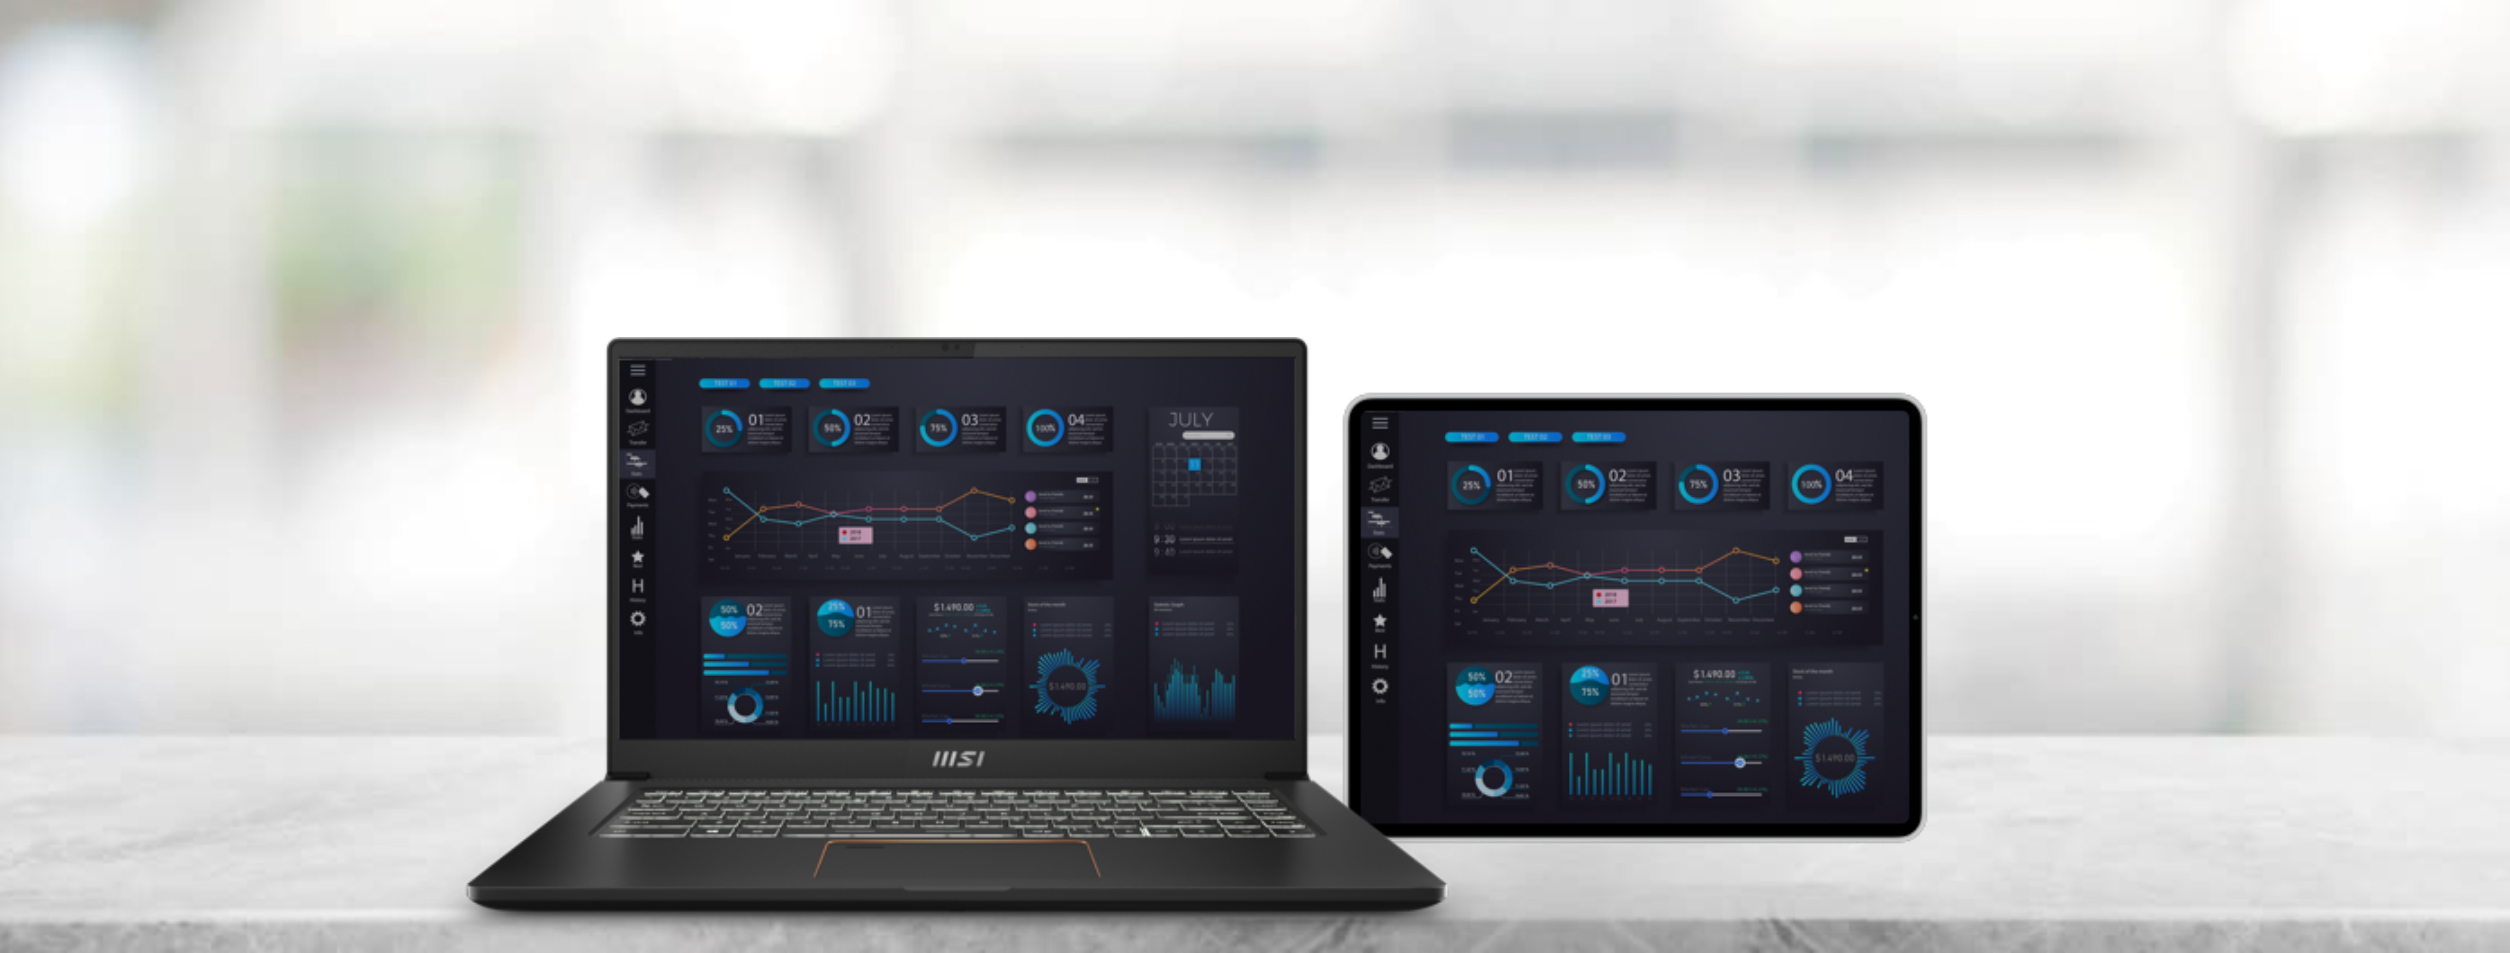 """#MSI Summit E15 A11SCST-059PL i7-1185G7 15.6"""" FHD Finger Touch panel 60Hz 72%NTSC DDR IV 16GB 3200MHz SSD 1TB NVMe PCIe Gen4x4 GTX1650 Ti Max-Q 4GB  Windows10 Pro without ODD"""